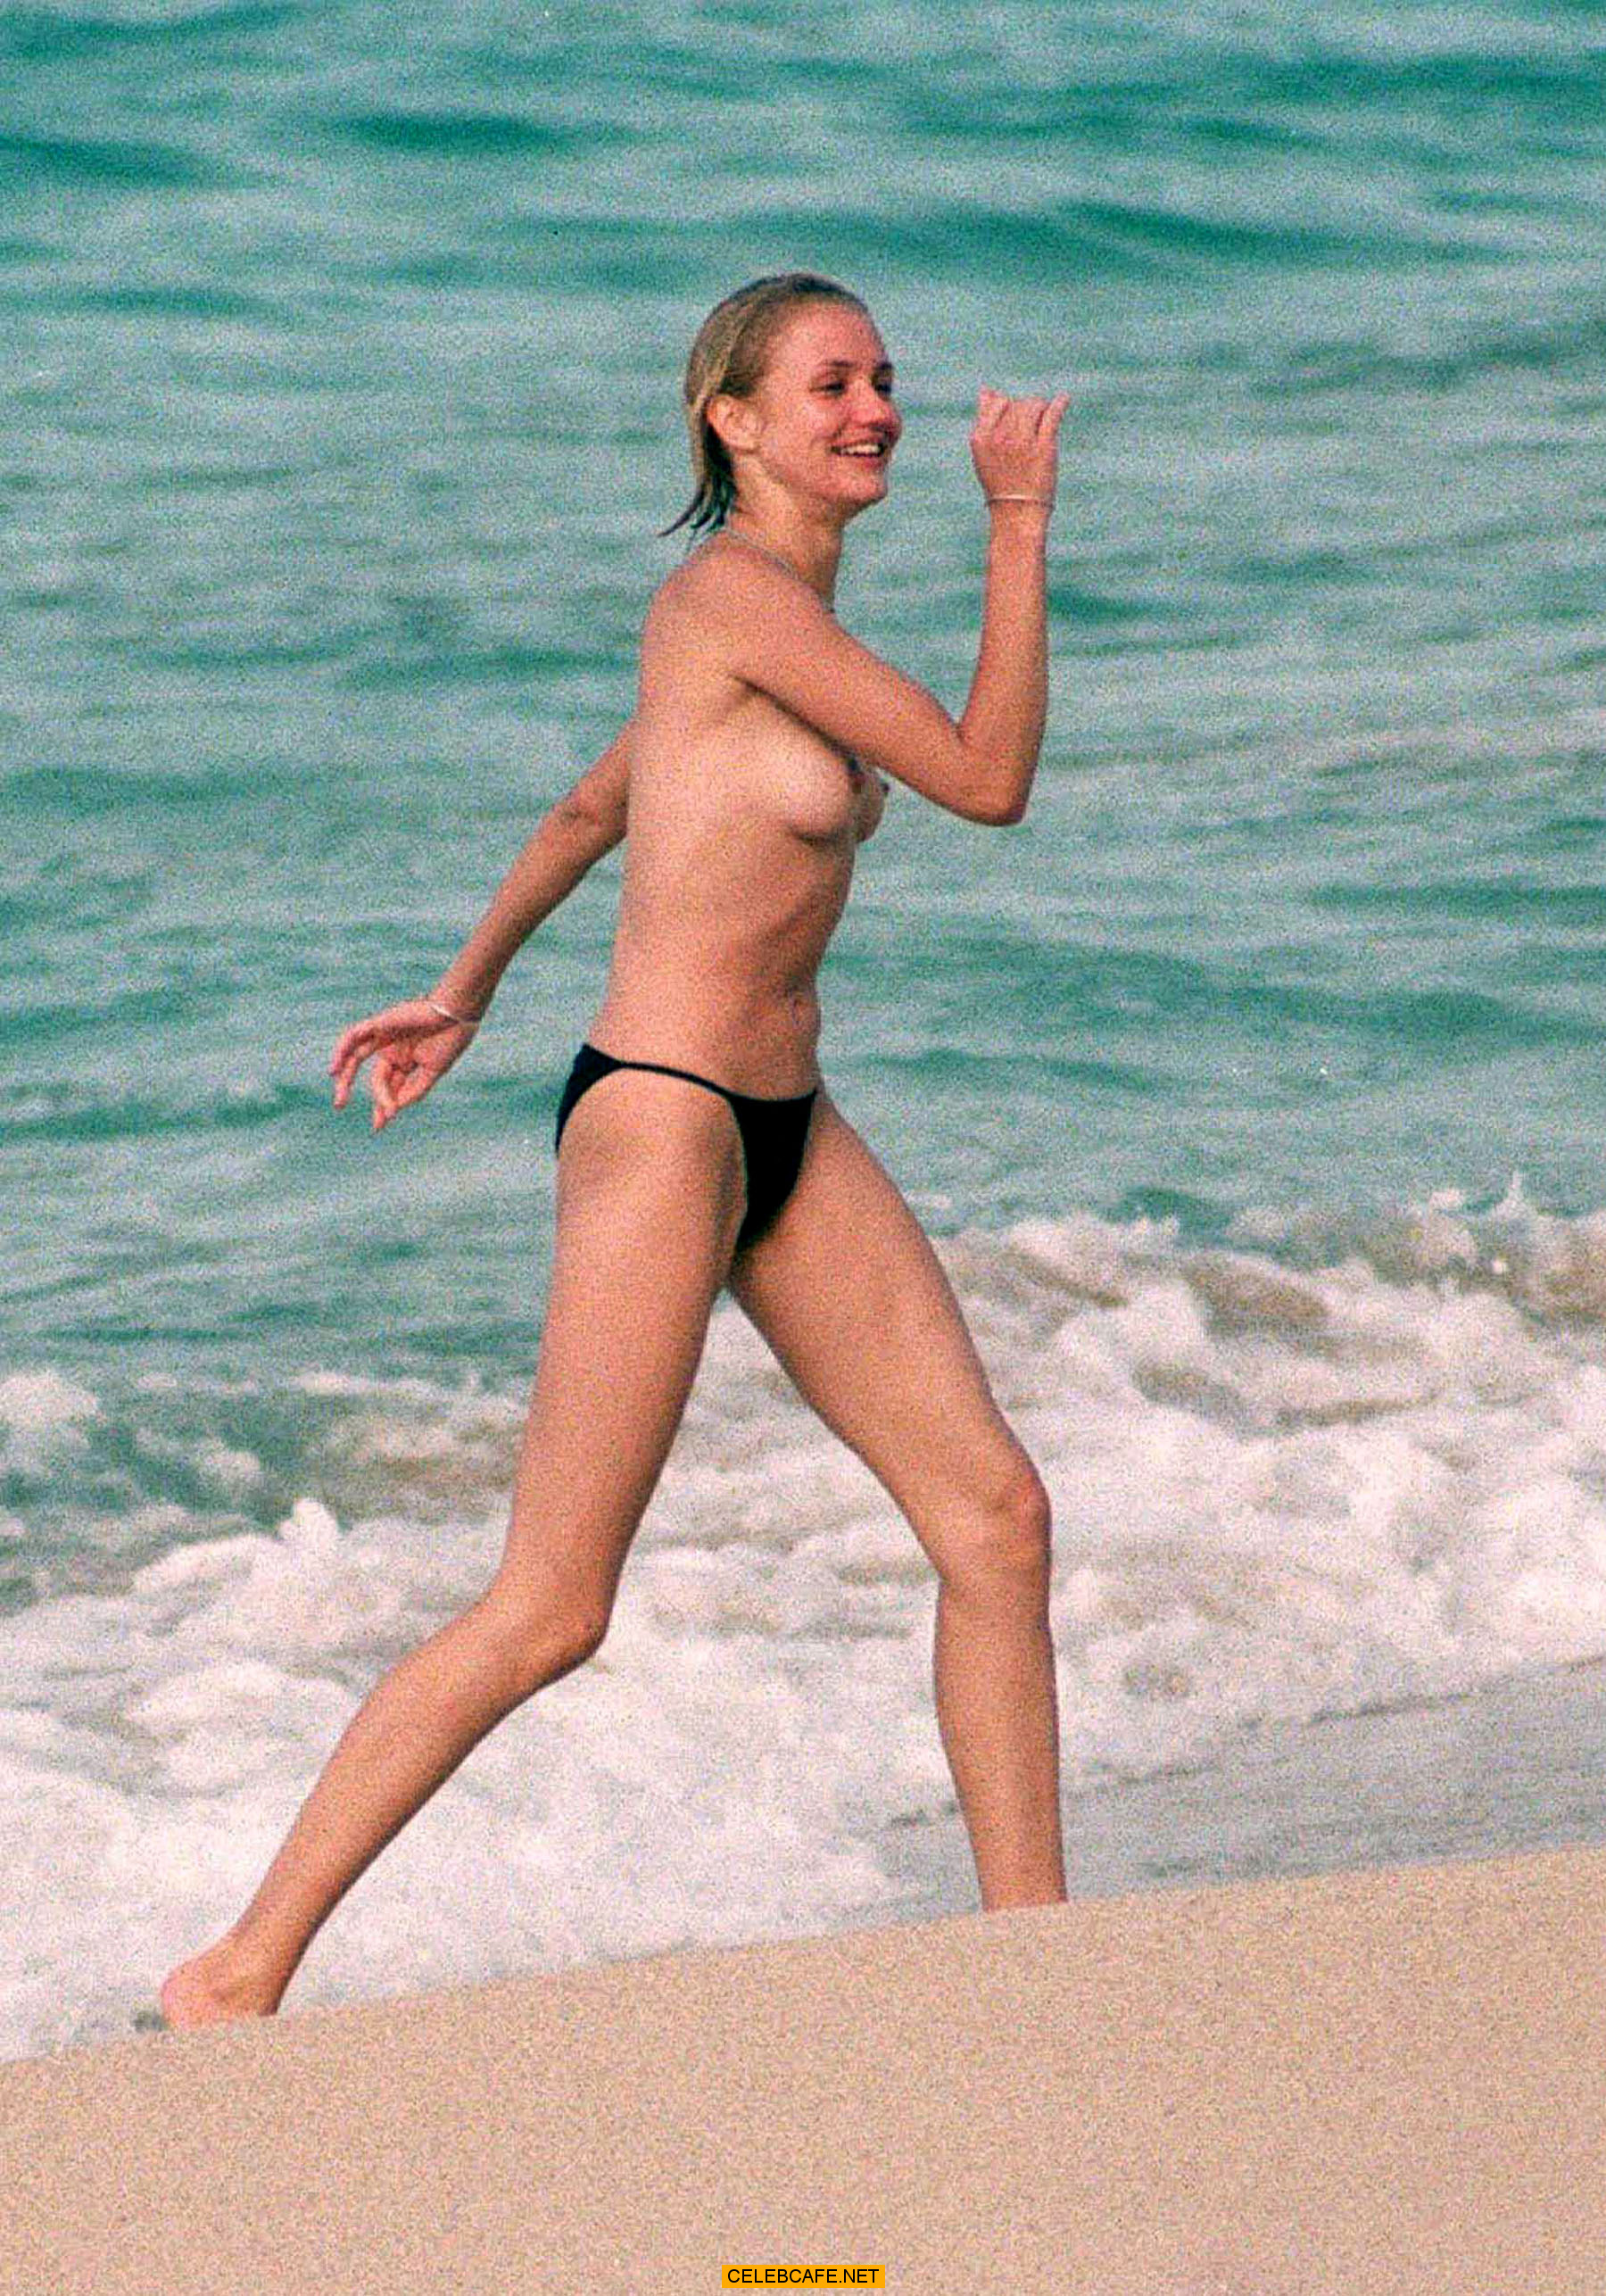 Topless Cameron Diaz nudes (73 photos), Sexy, Cleavage, Twitter, see through 2020